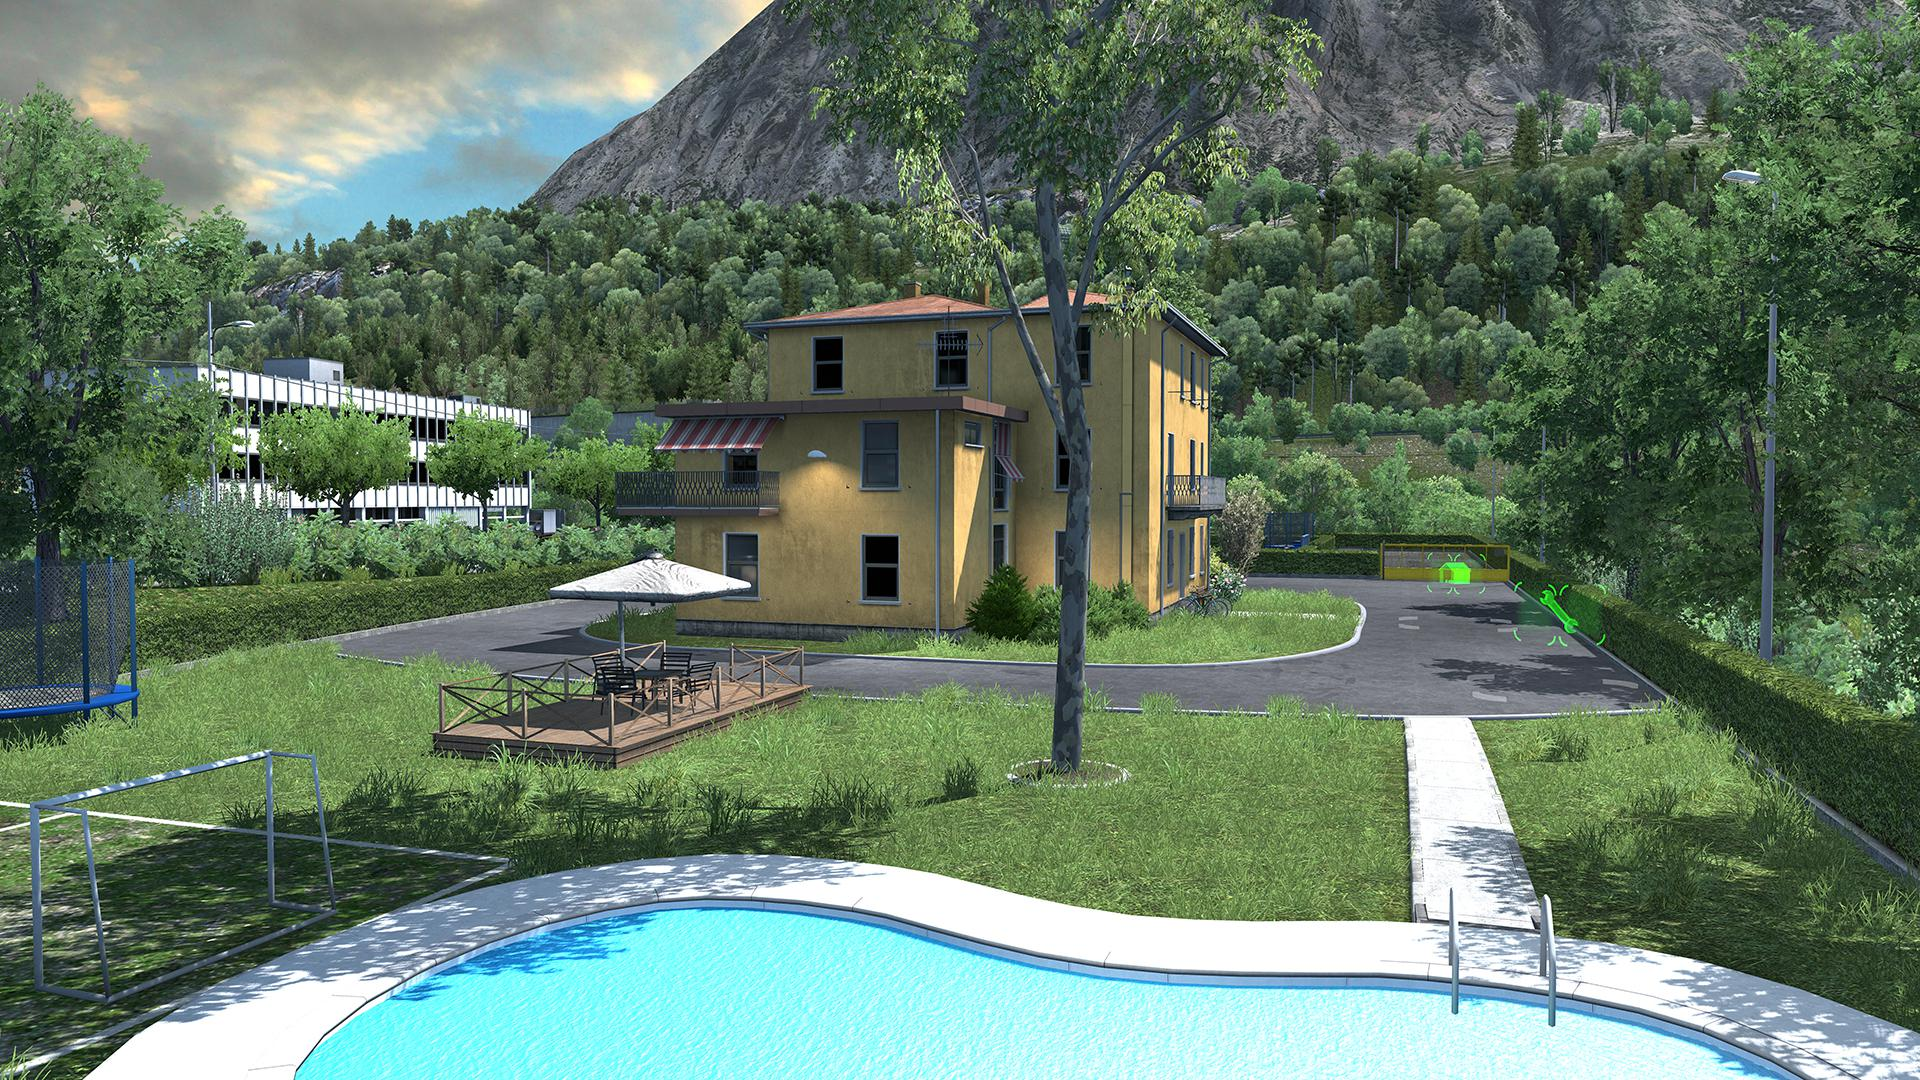 ETS2 - House in Italy with Garage, Refuel, Parking and Service V1 (1.37 - 1.38)